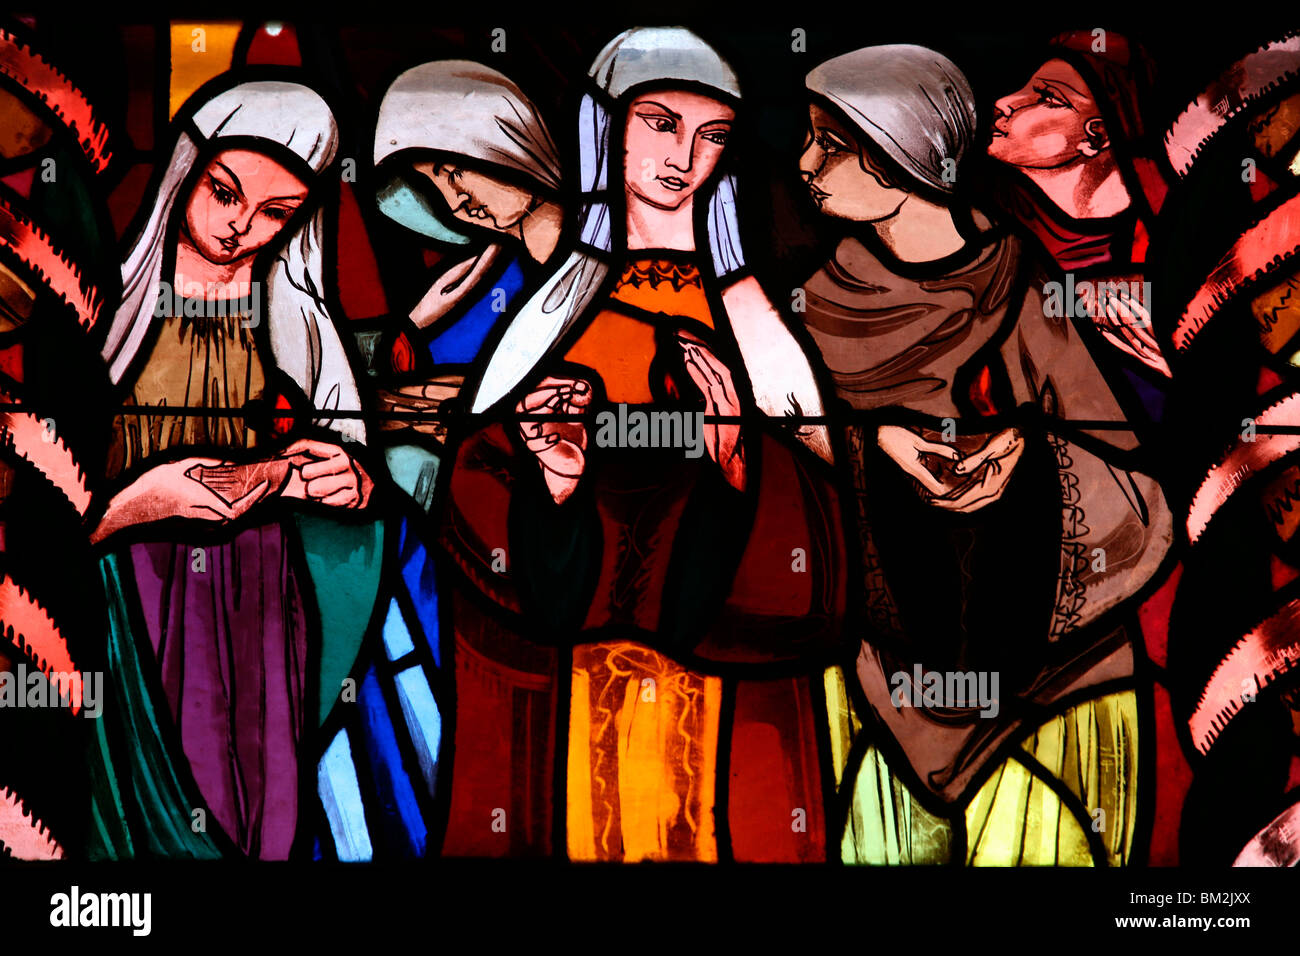 Holy virgins in the stained glass window of Saint-Joseph des Fins church, Annecy, Haute Savoie, France Stock Photo